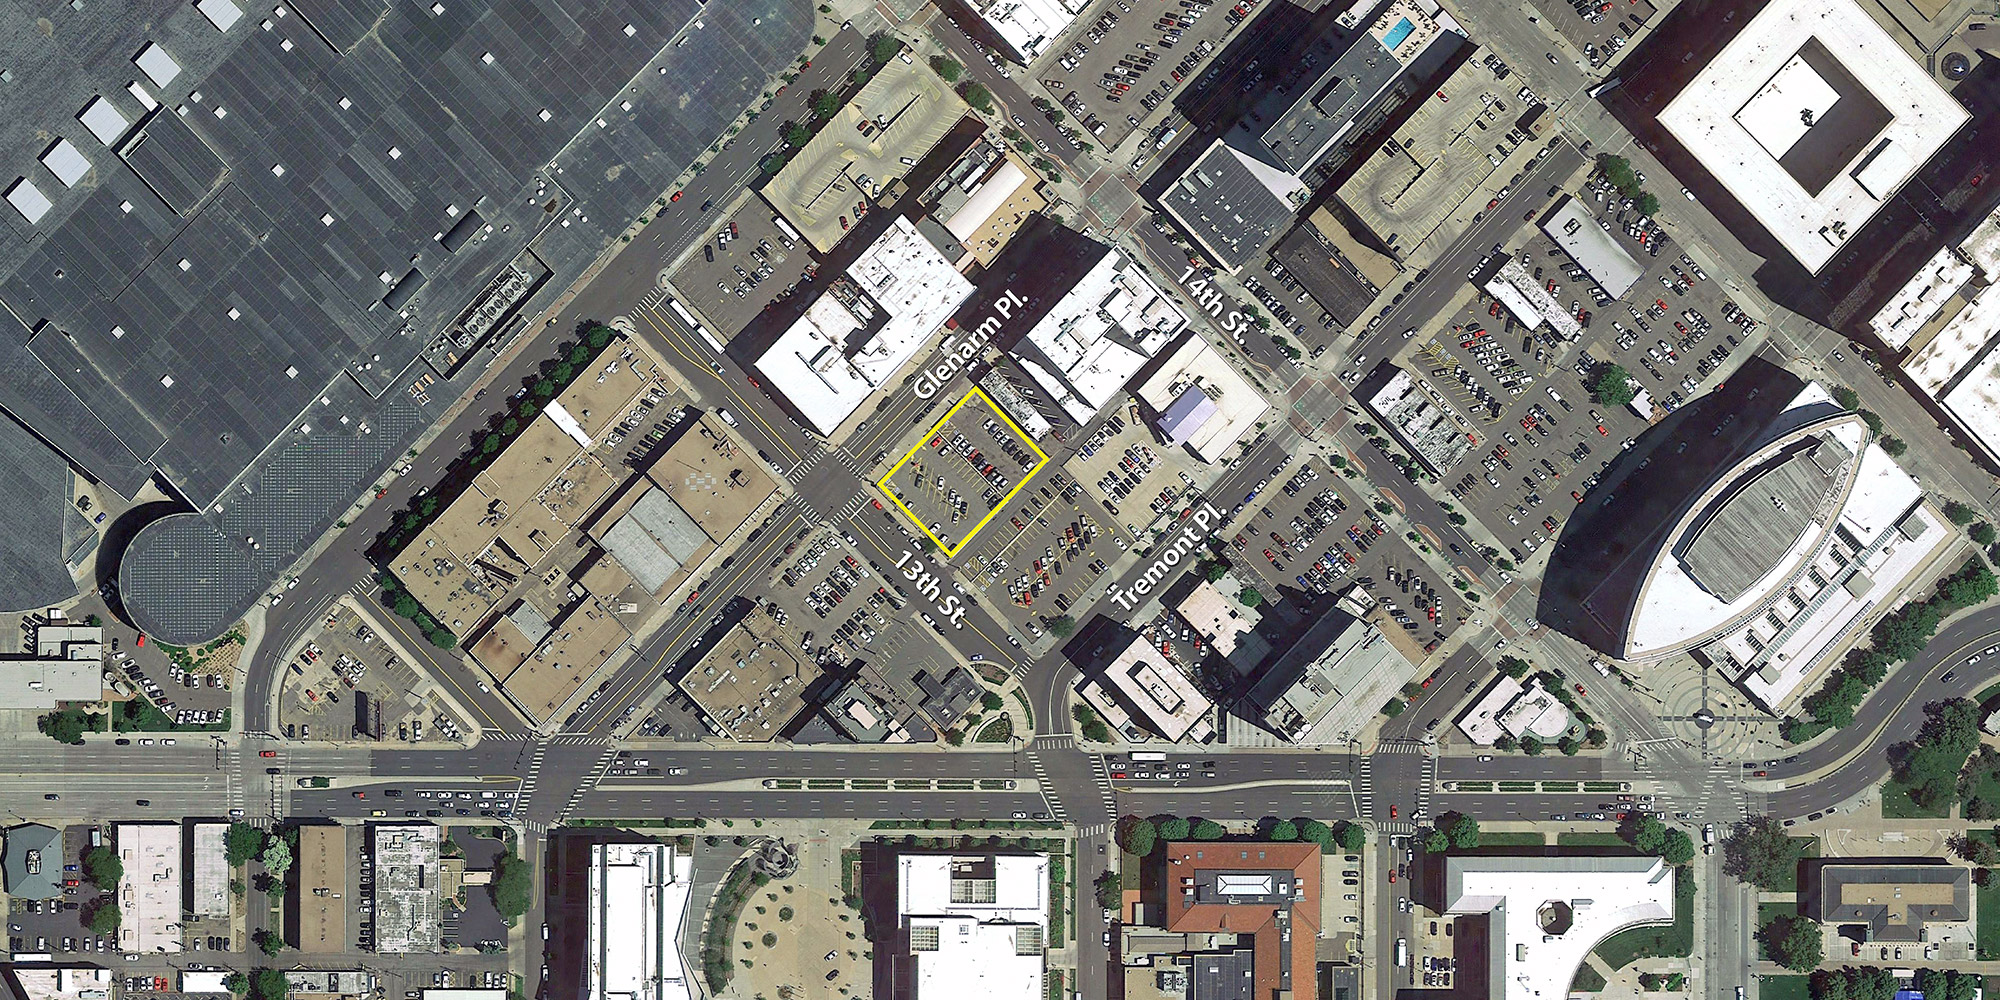 Location of the proposed dual-brand hotel at 13th & Glenarm, aerial image courtesy of Google Earth